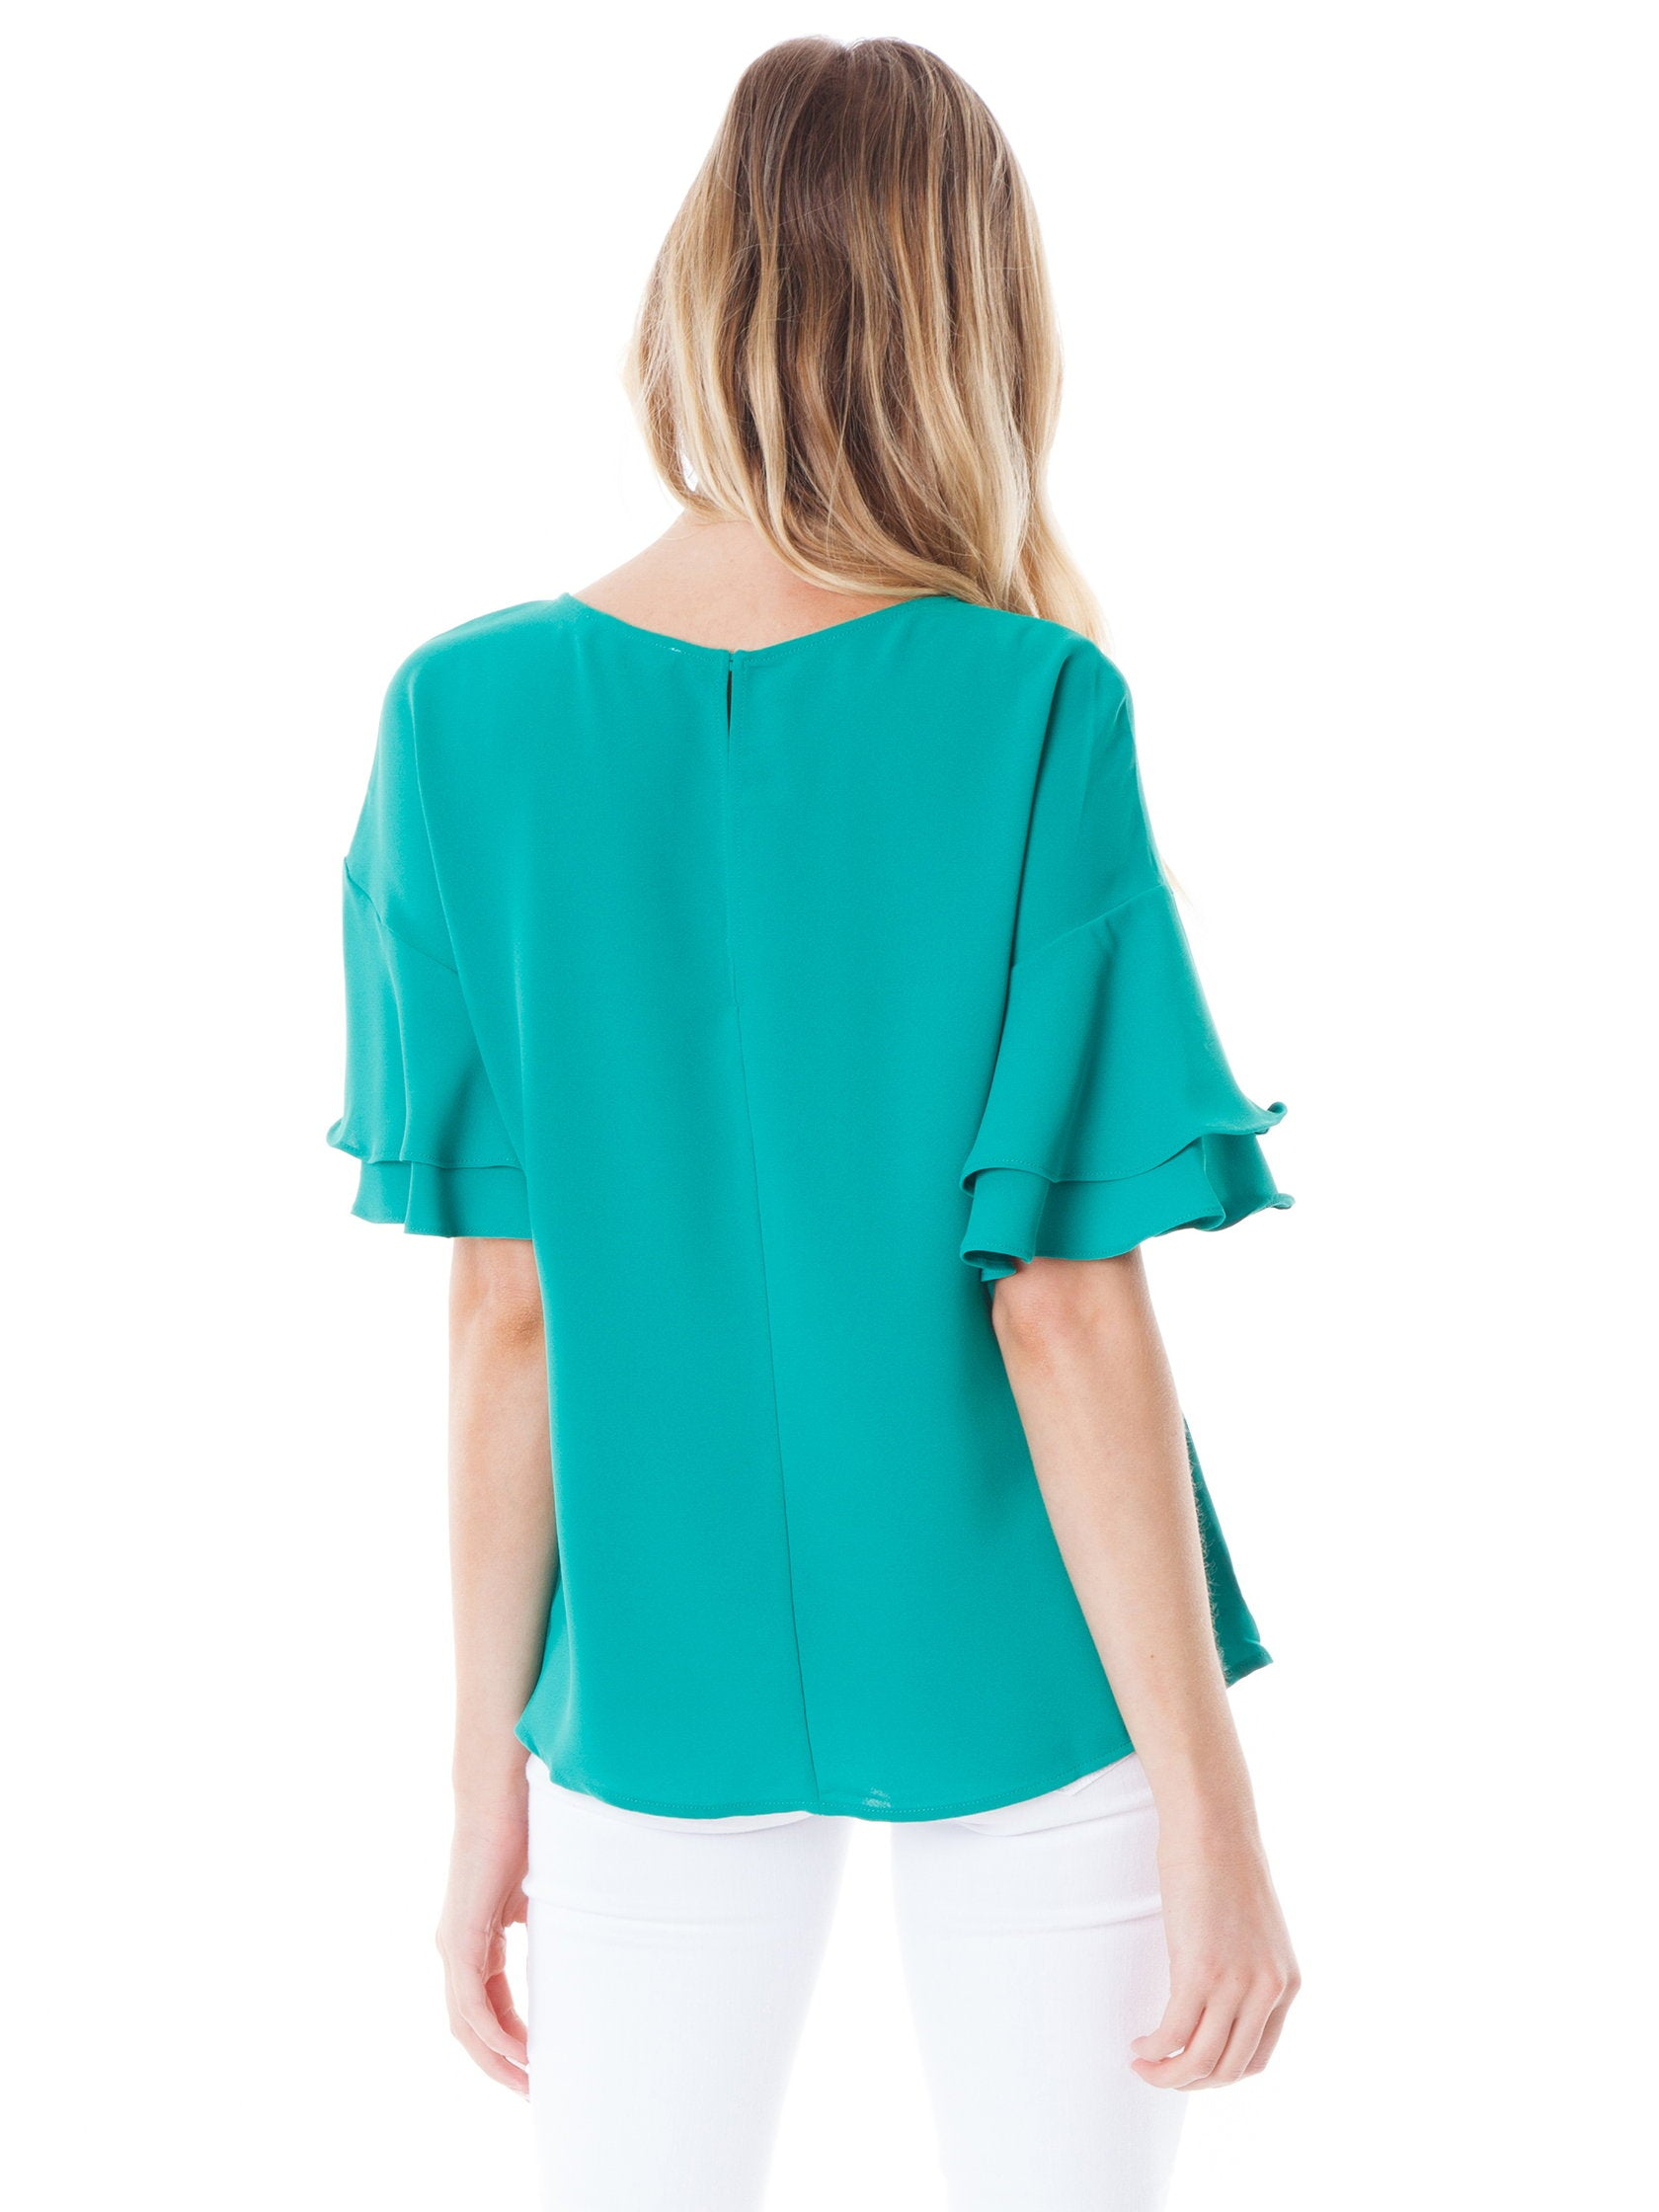 Women outfit in a top rental from Lush called Ruffle Sleeve Top